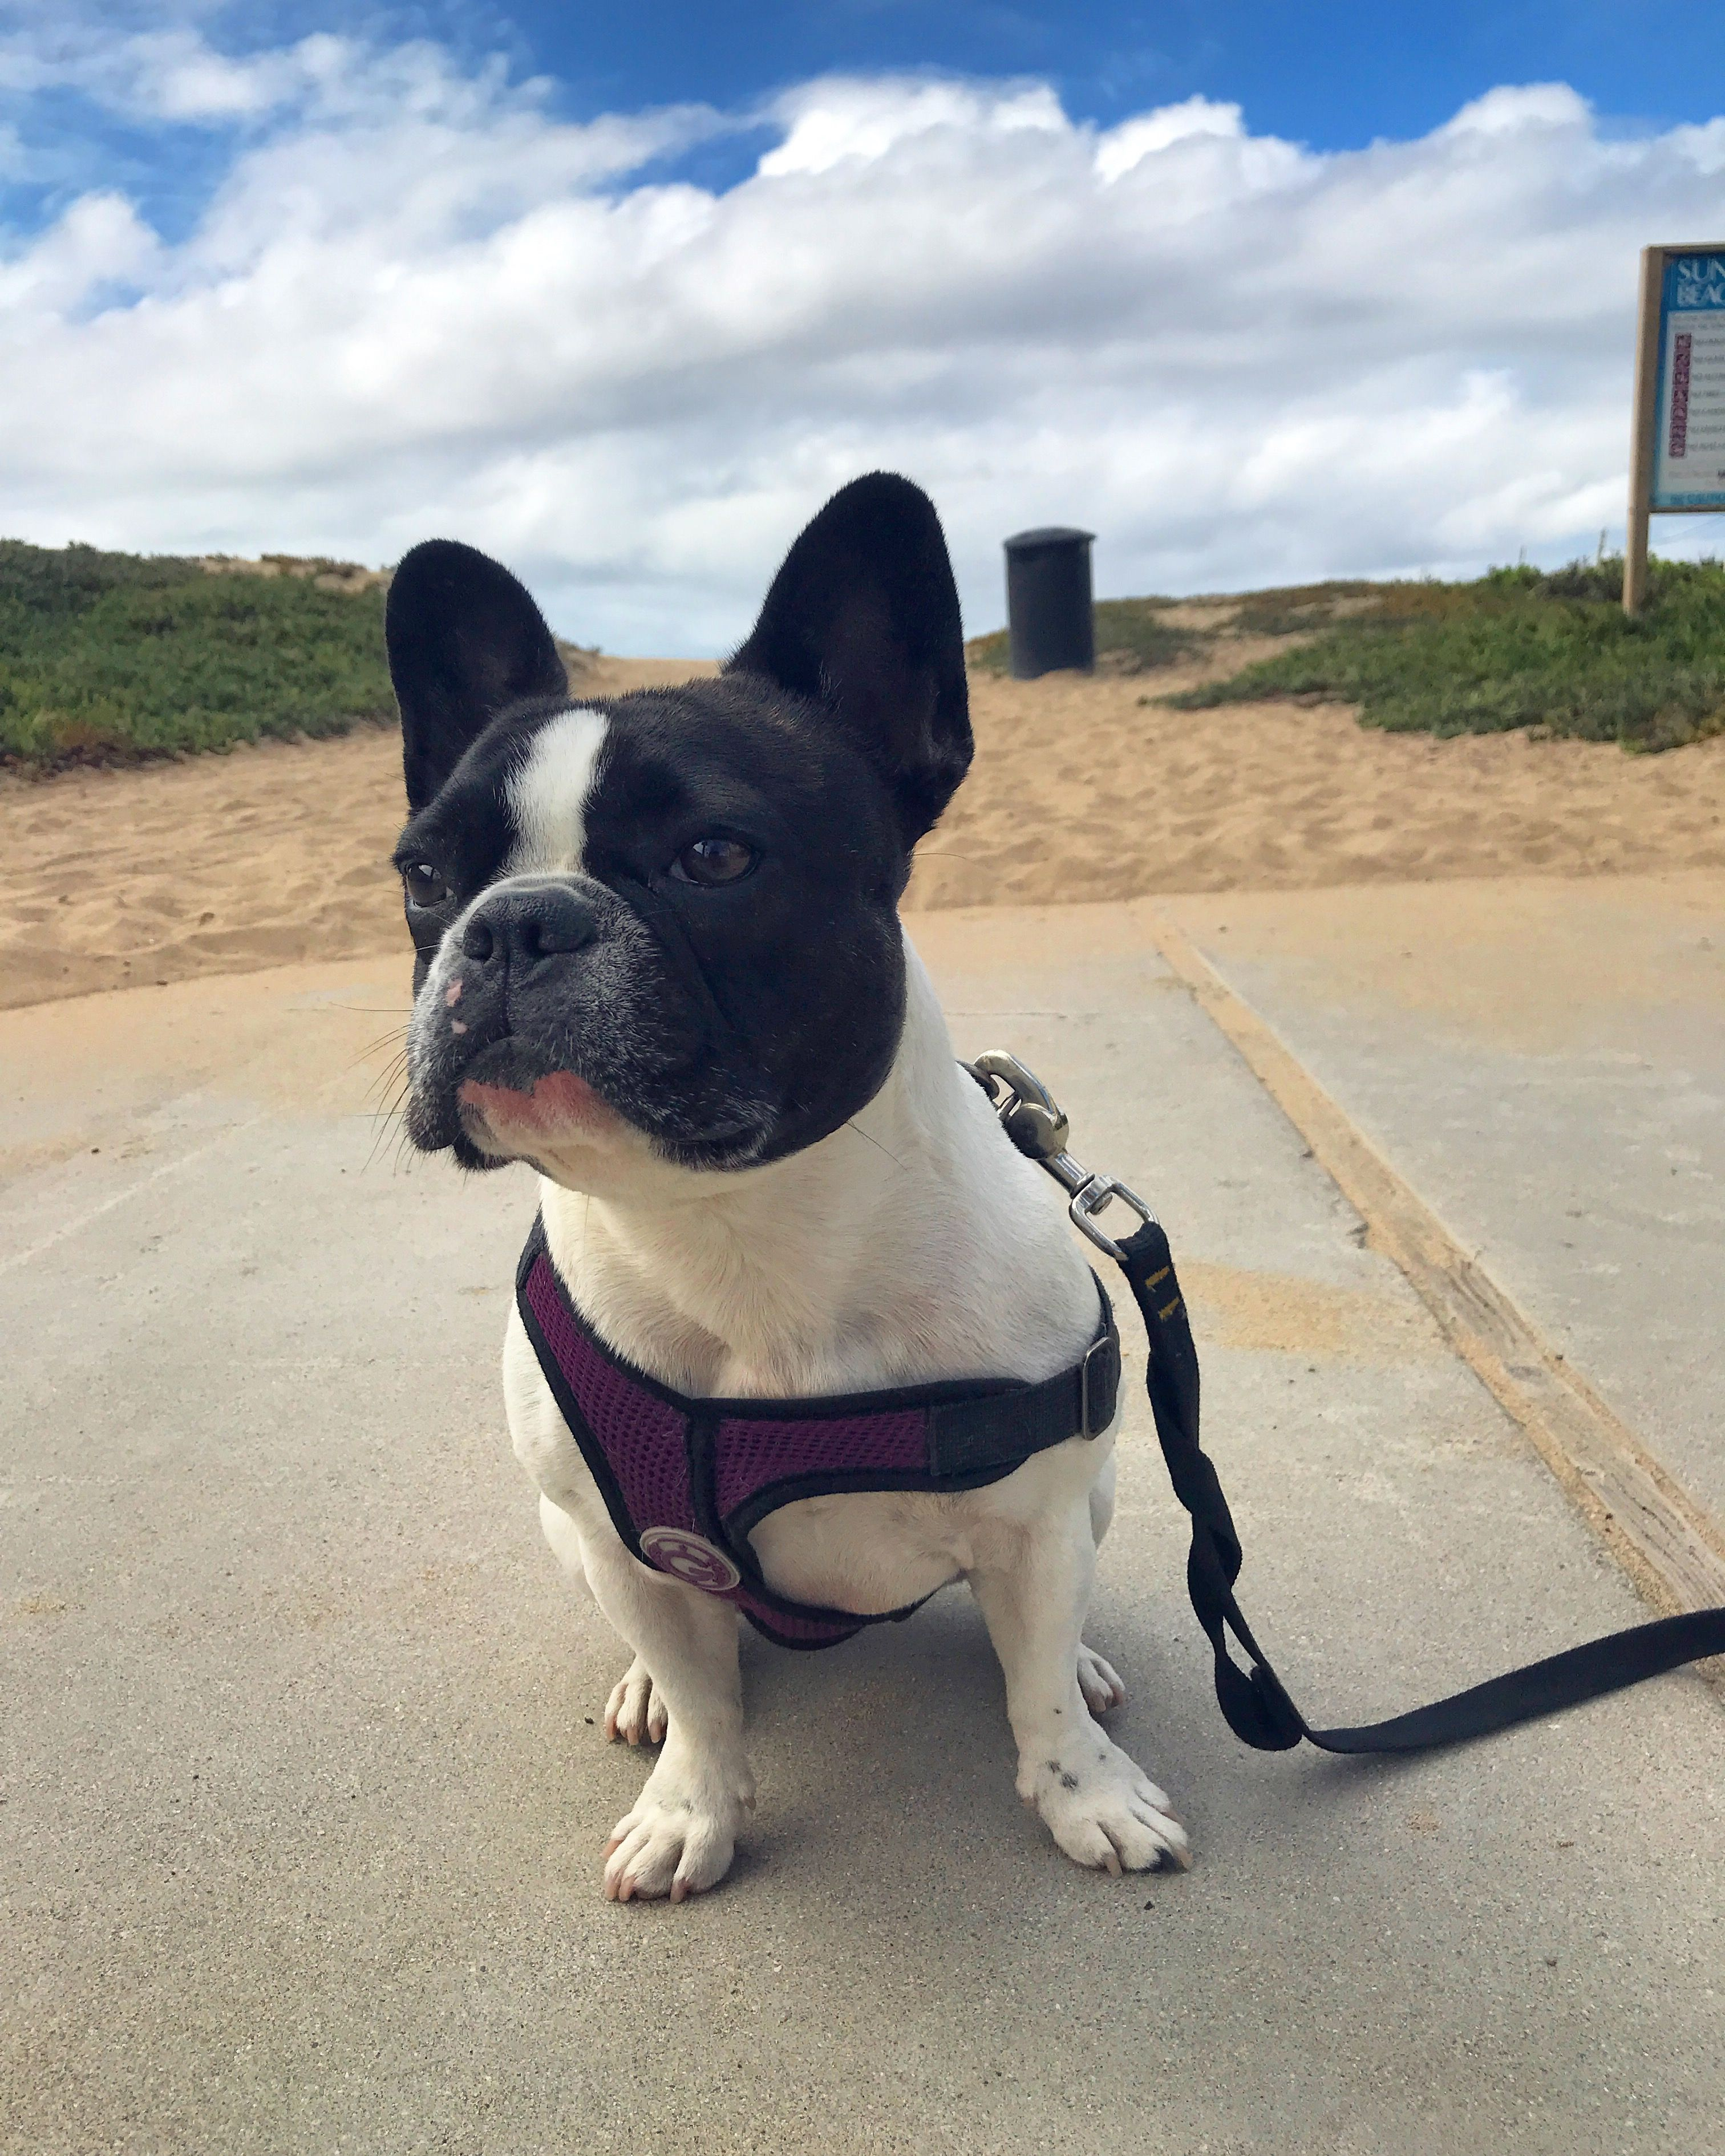 Stella the French Bulldog at the Beach Baby dogs, Dog